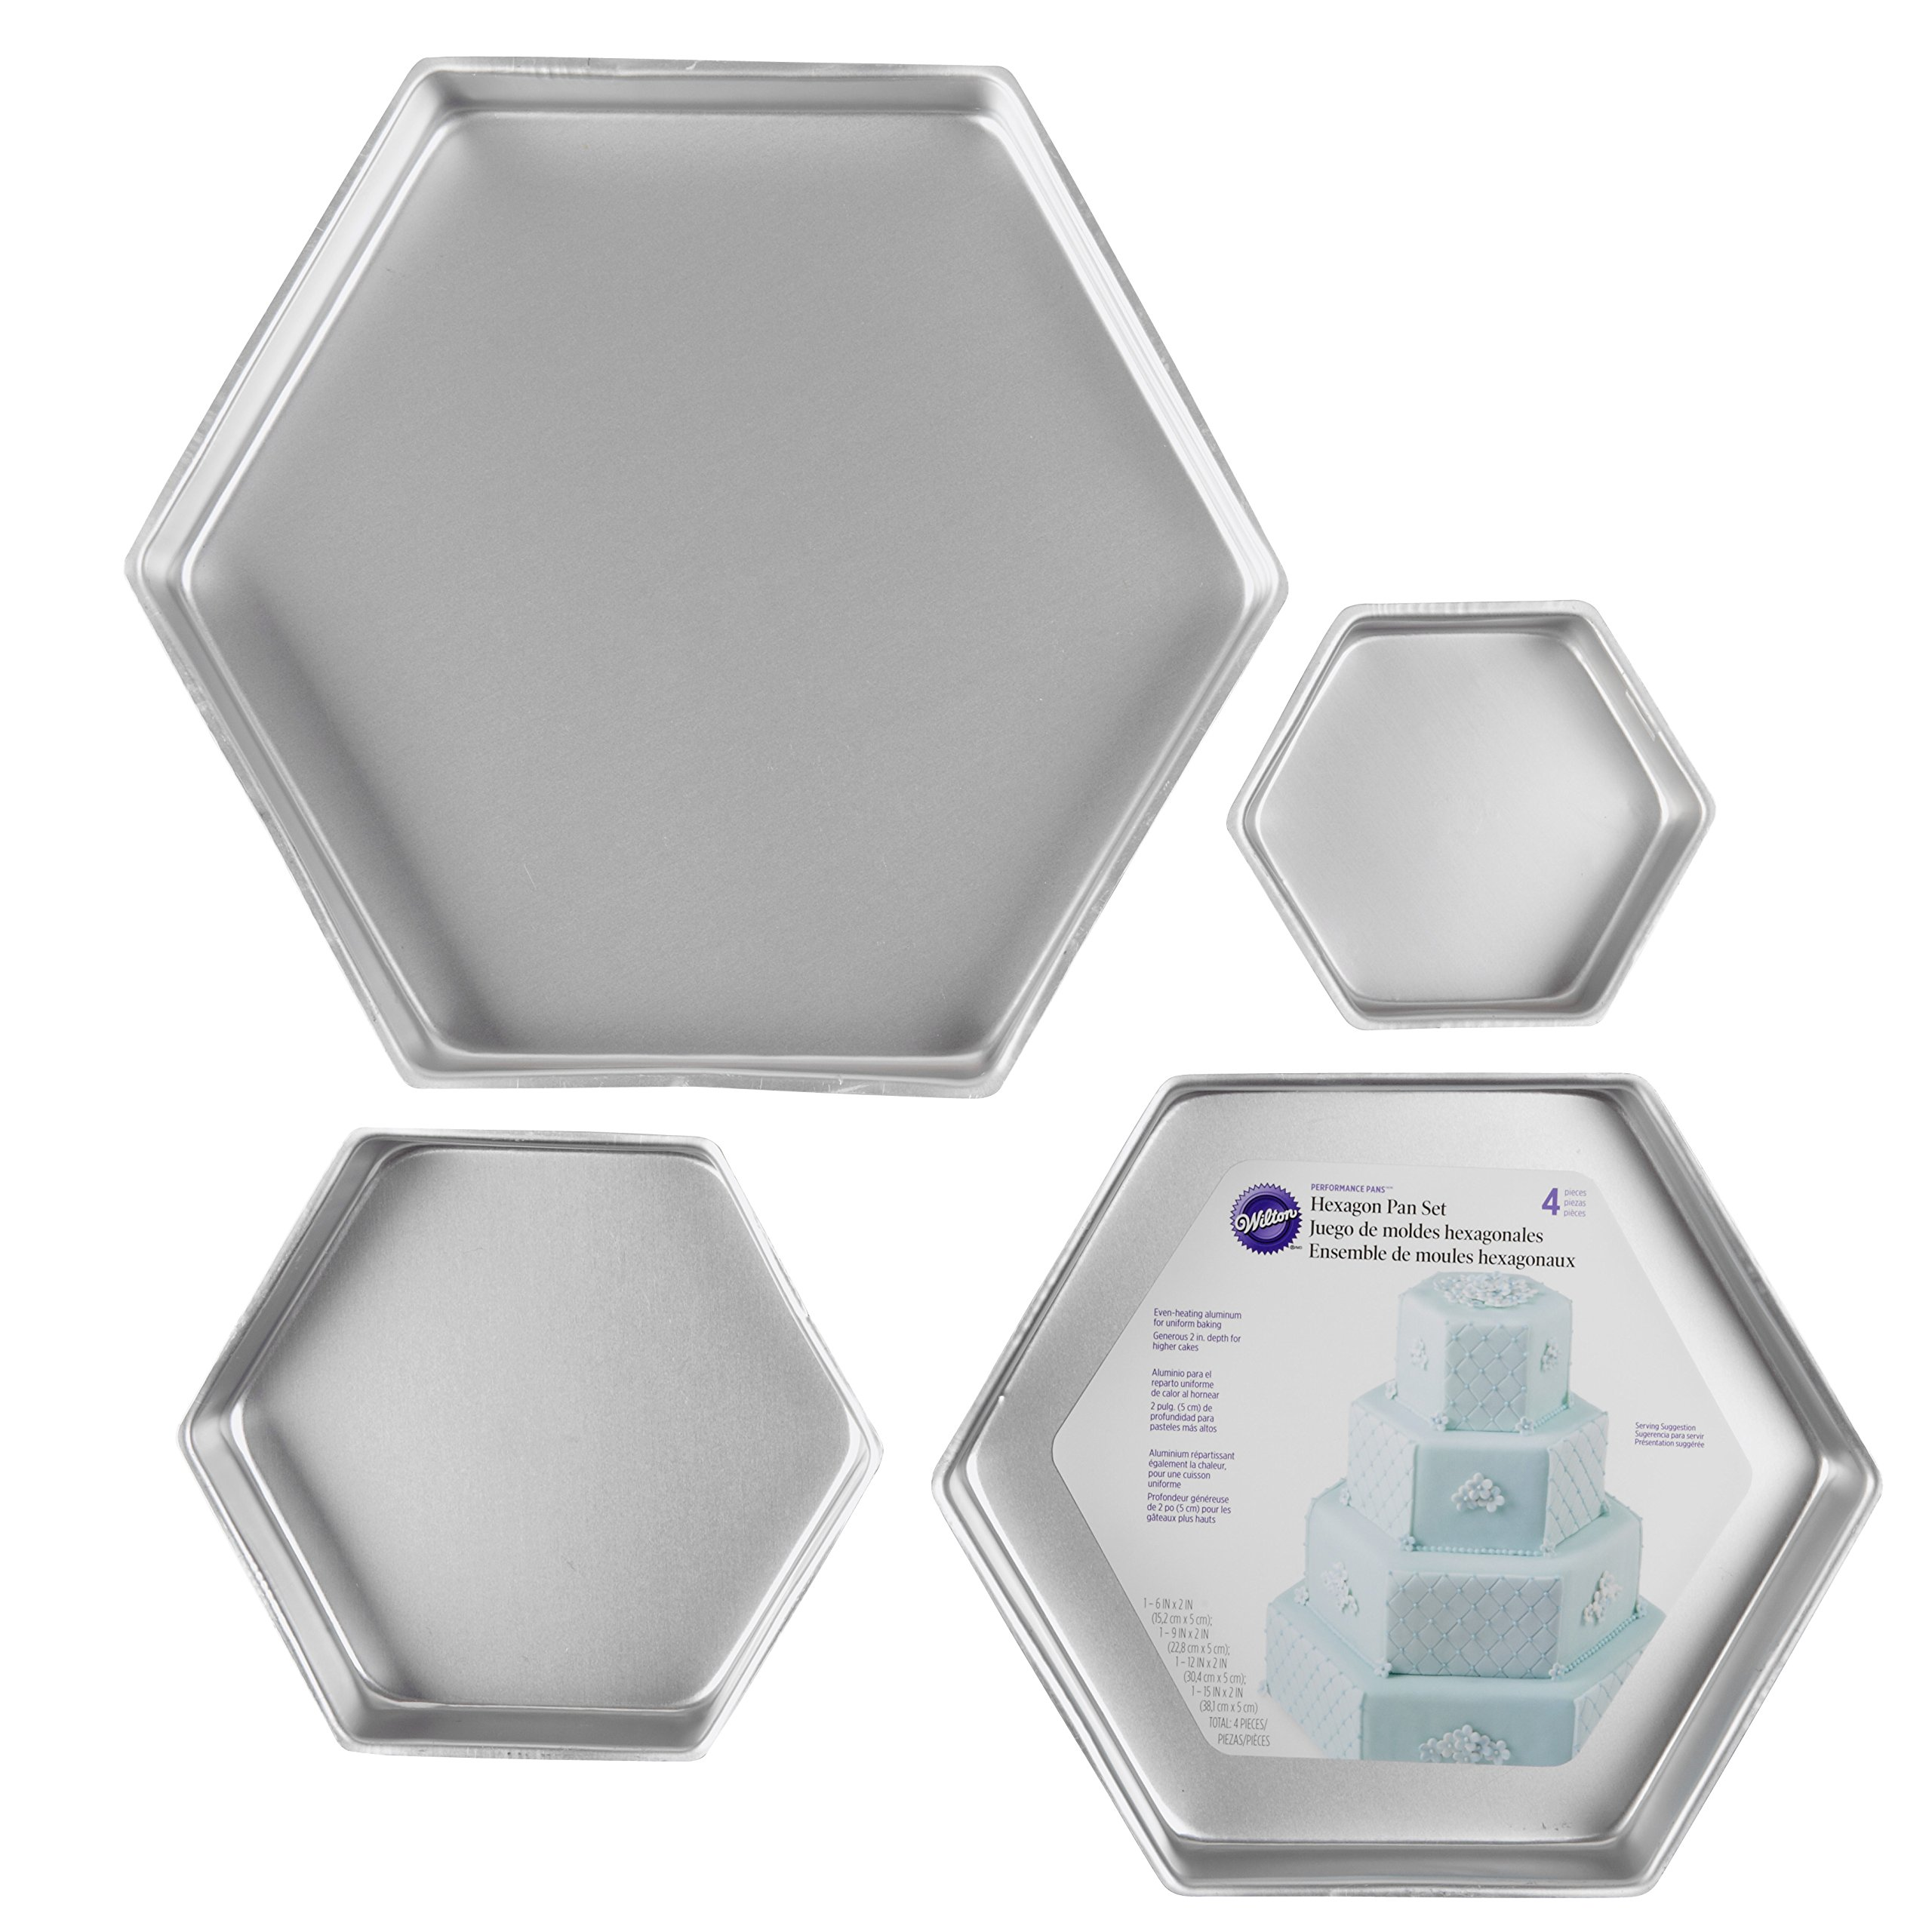 Wilton Performance Pans Hexagon Cake Pan Set, 4-Piece by Wilton